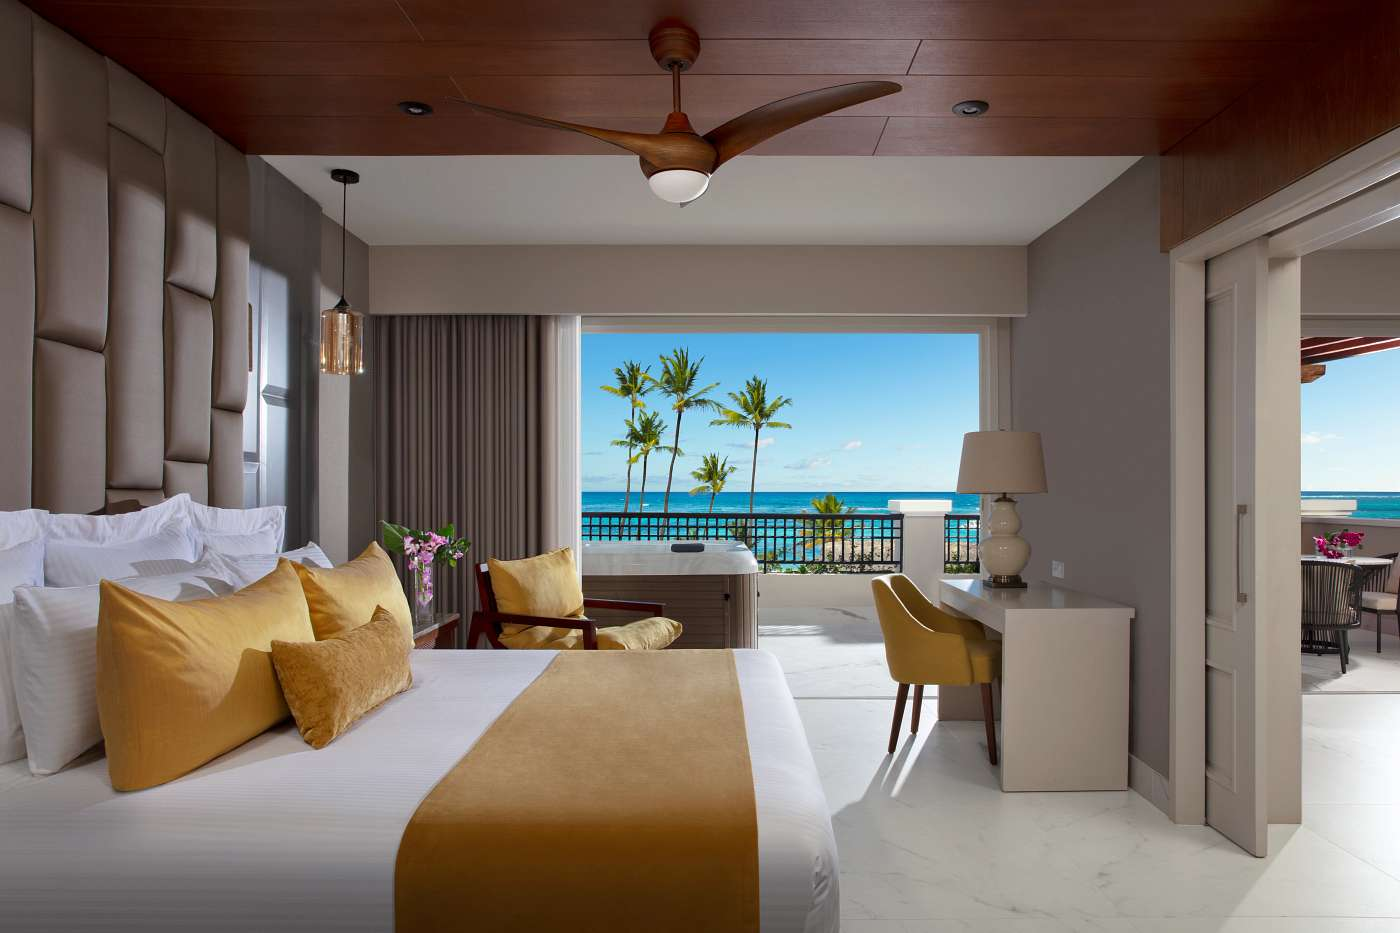 King bed room with ocean view whirlpool tub and palm trees